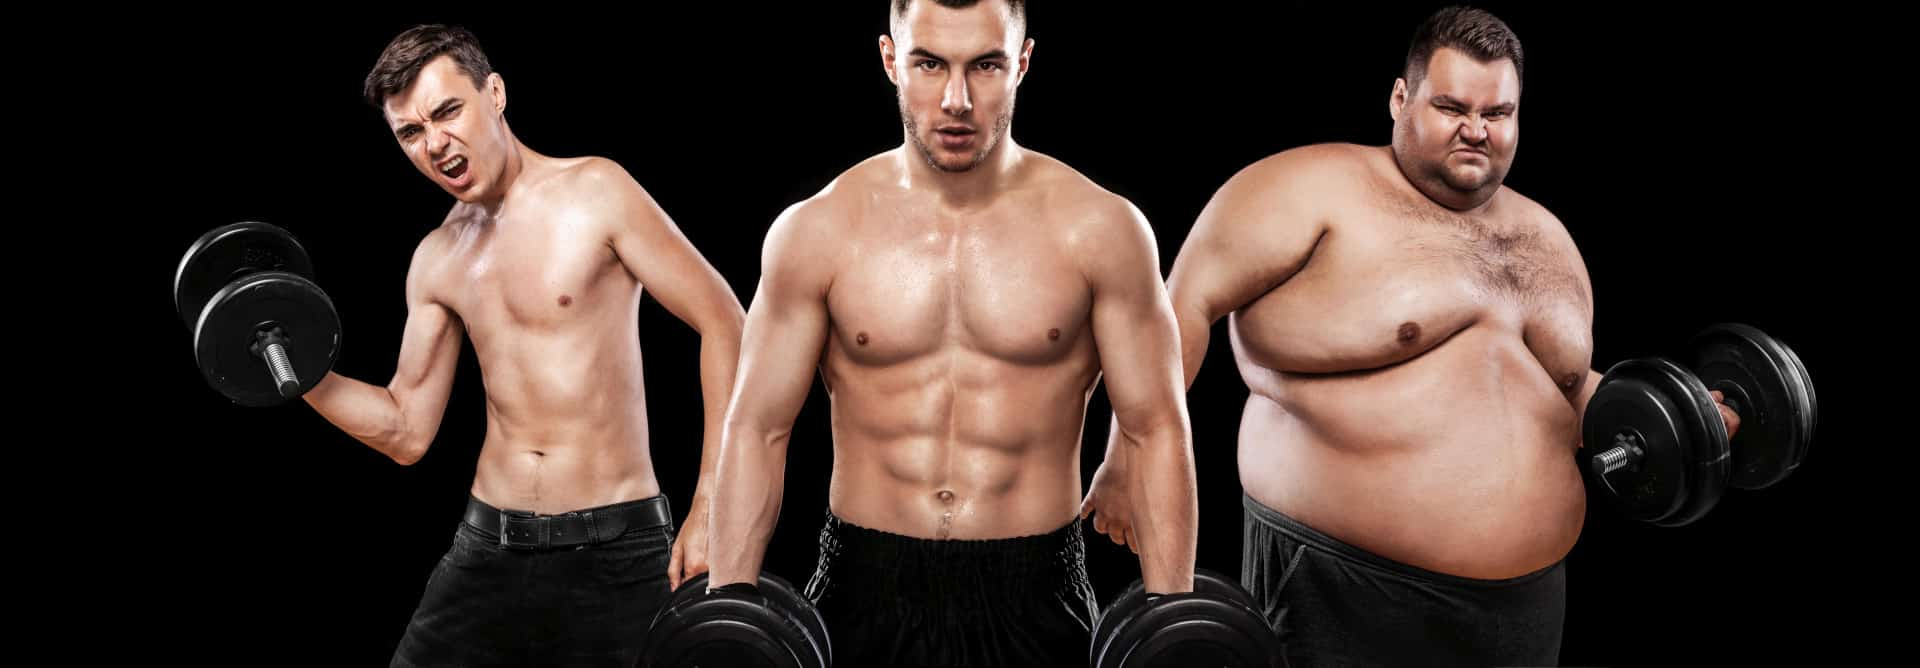 Bodybuilding and Body Types